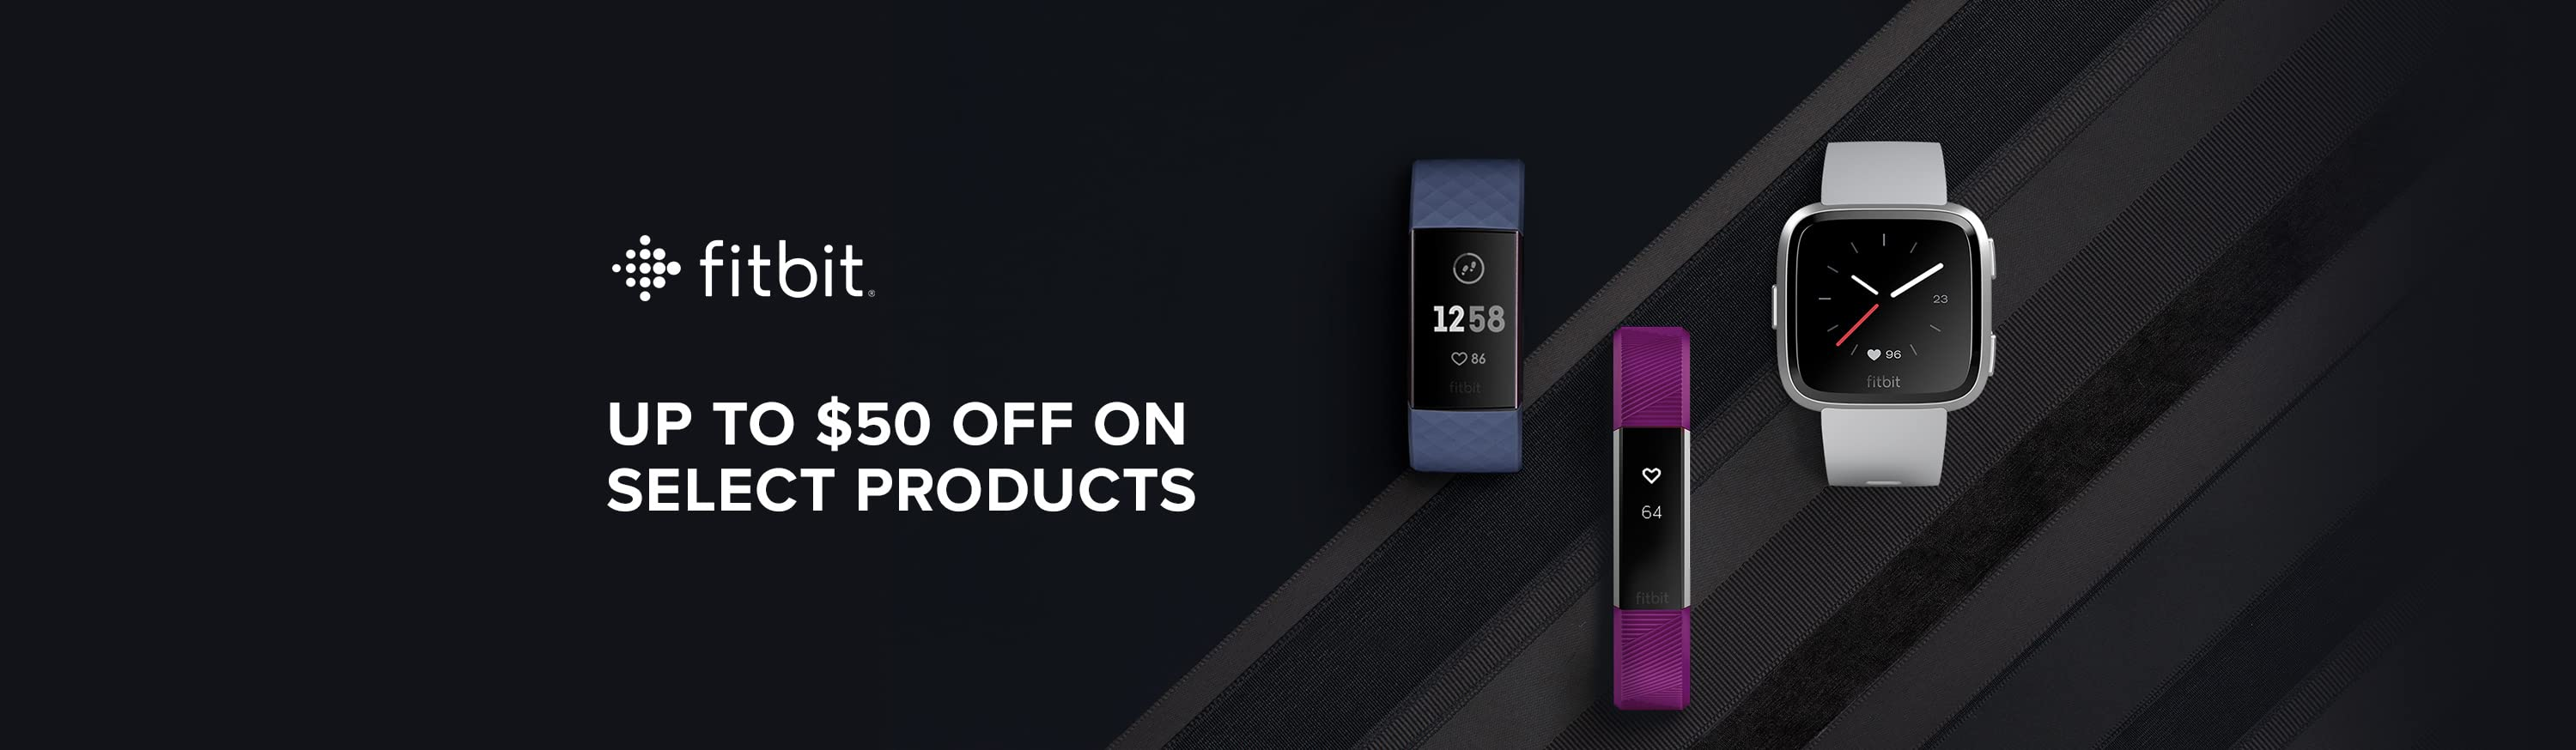 Fitbit. Up to $50 off on select products.